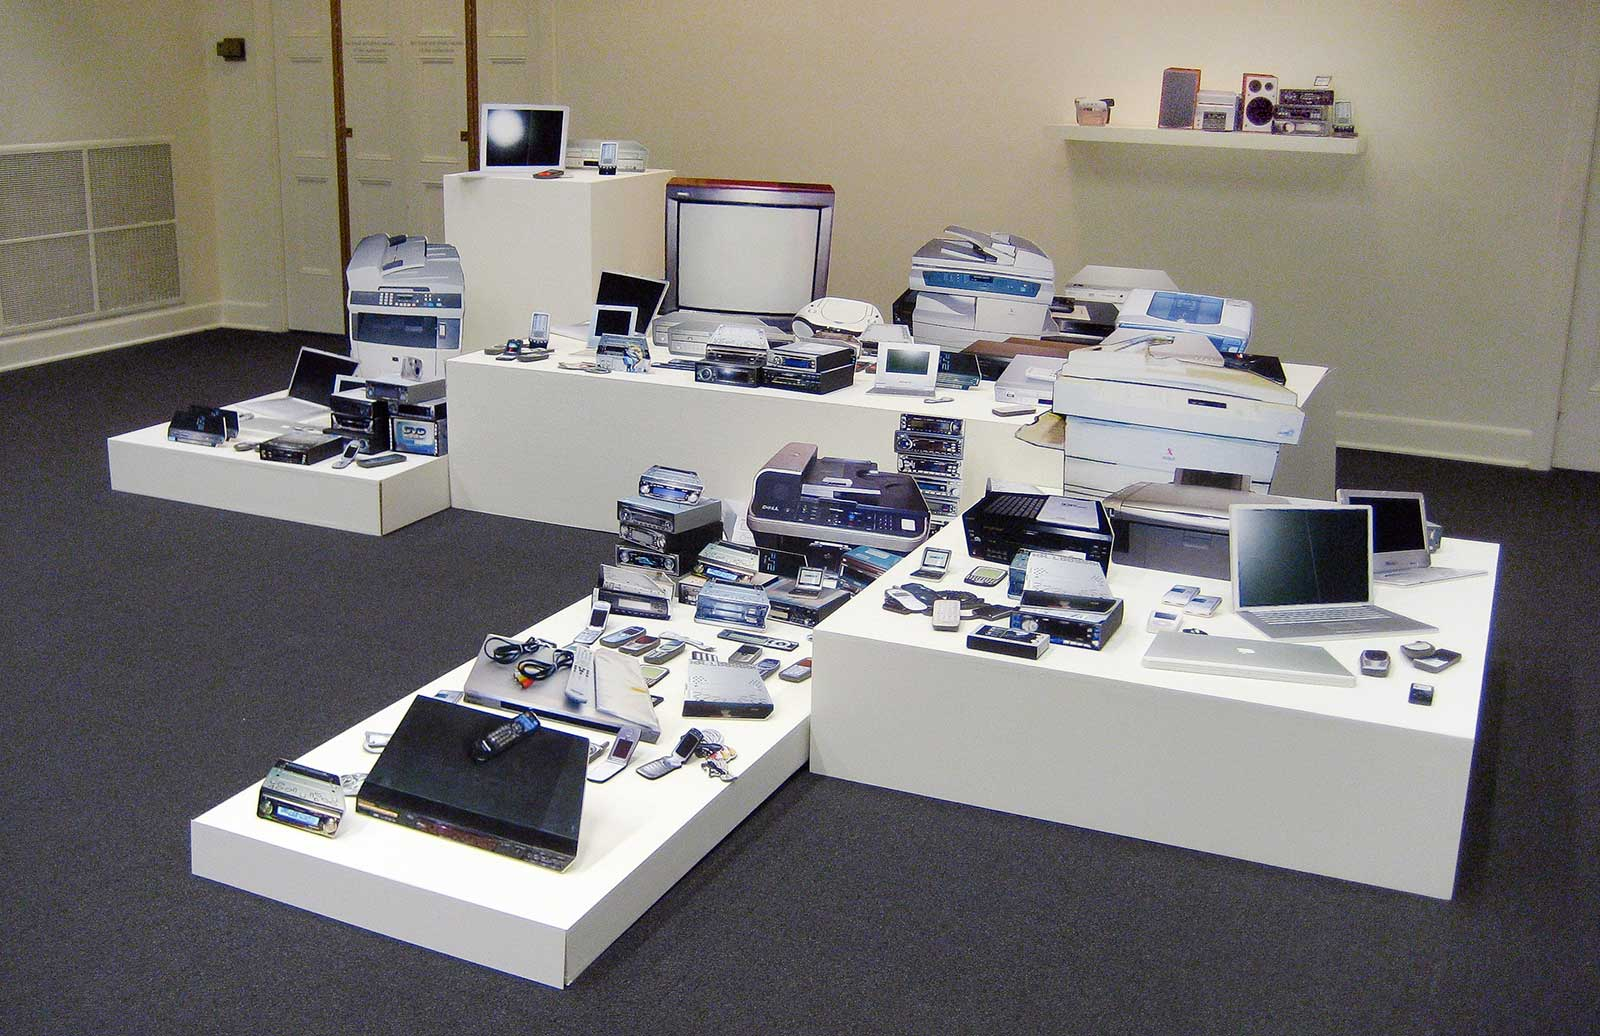 installation of prints of electronic devices